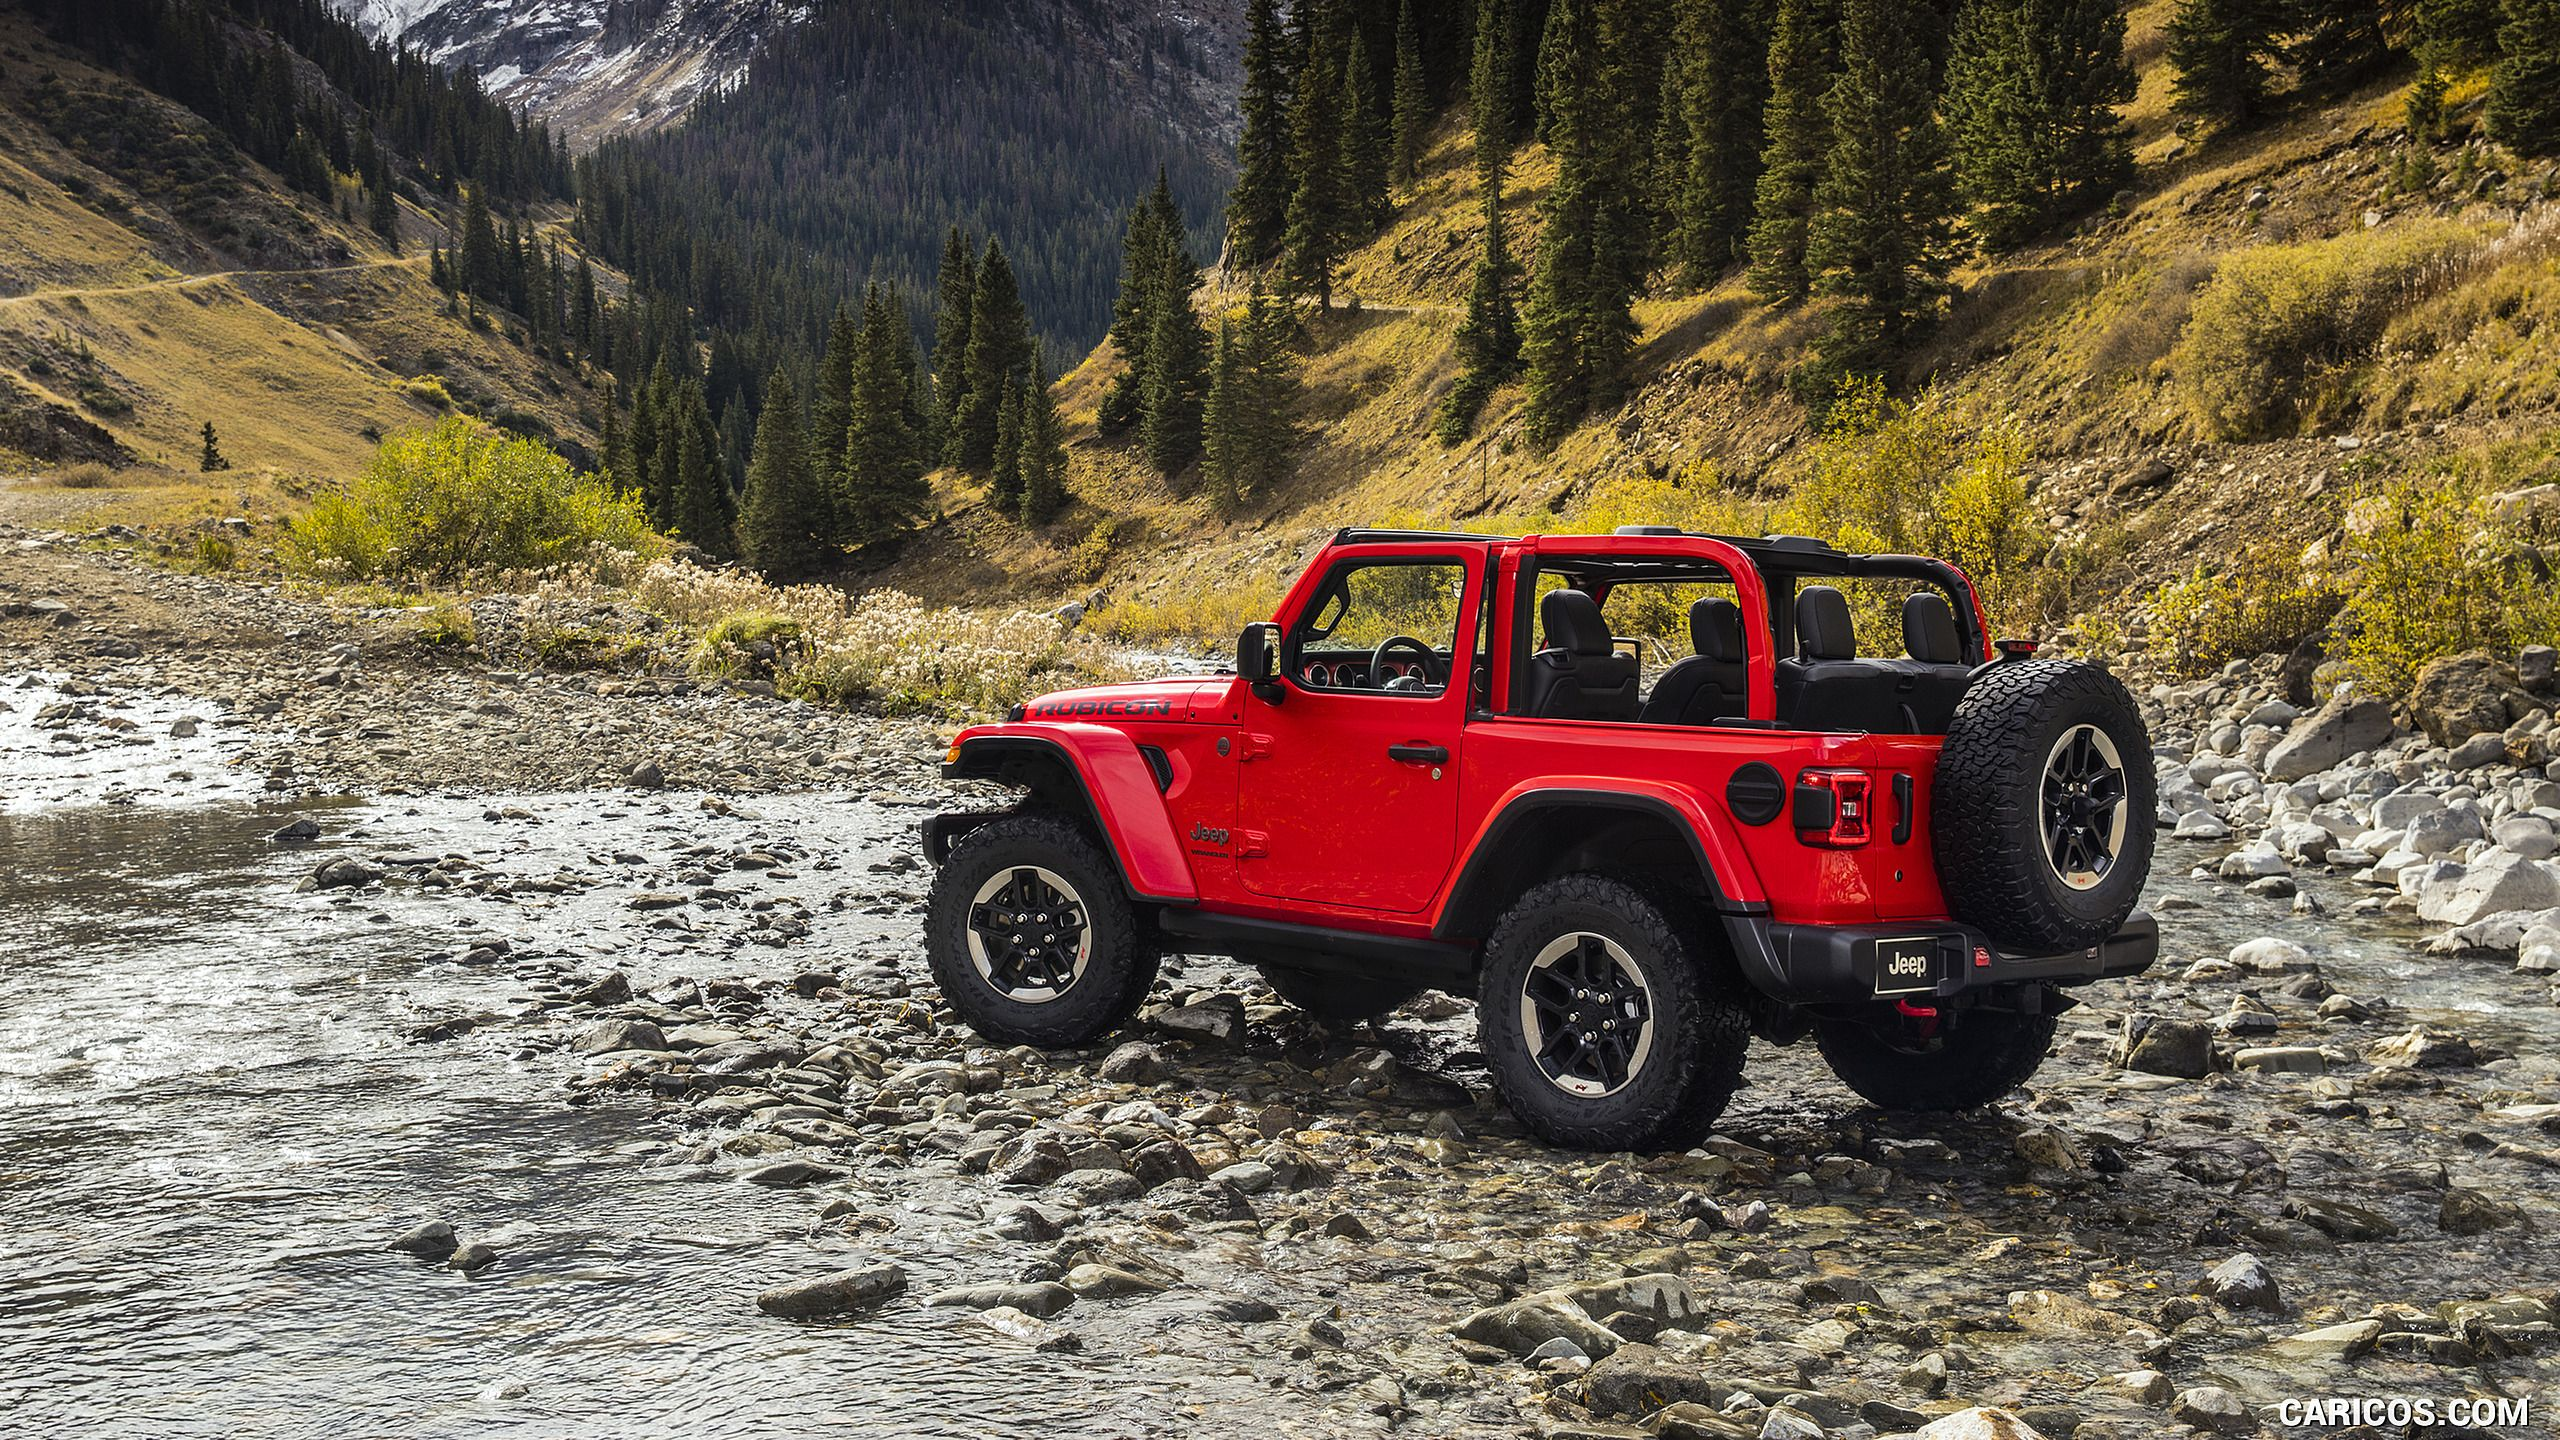 Jeep Rubicon Wallpapers Top Free Jeep Rubicon Backgrounds Wallpaperaccess